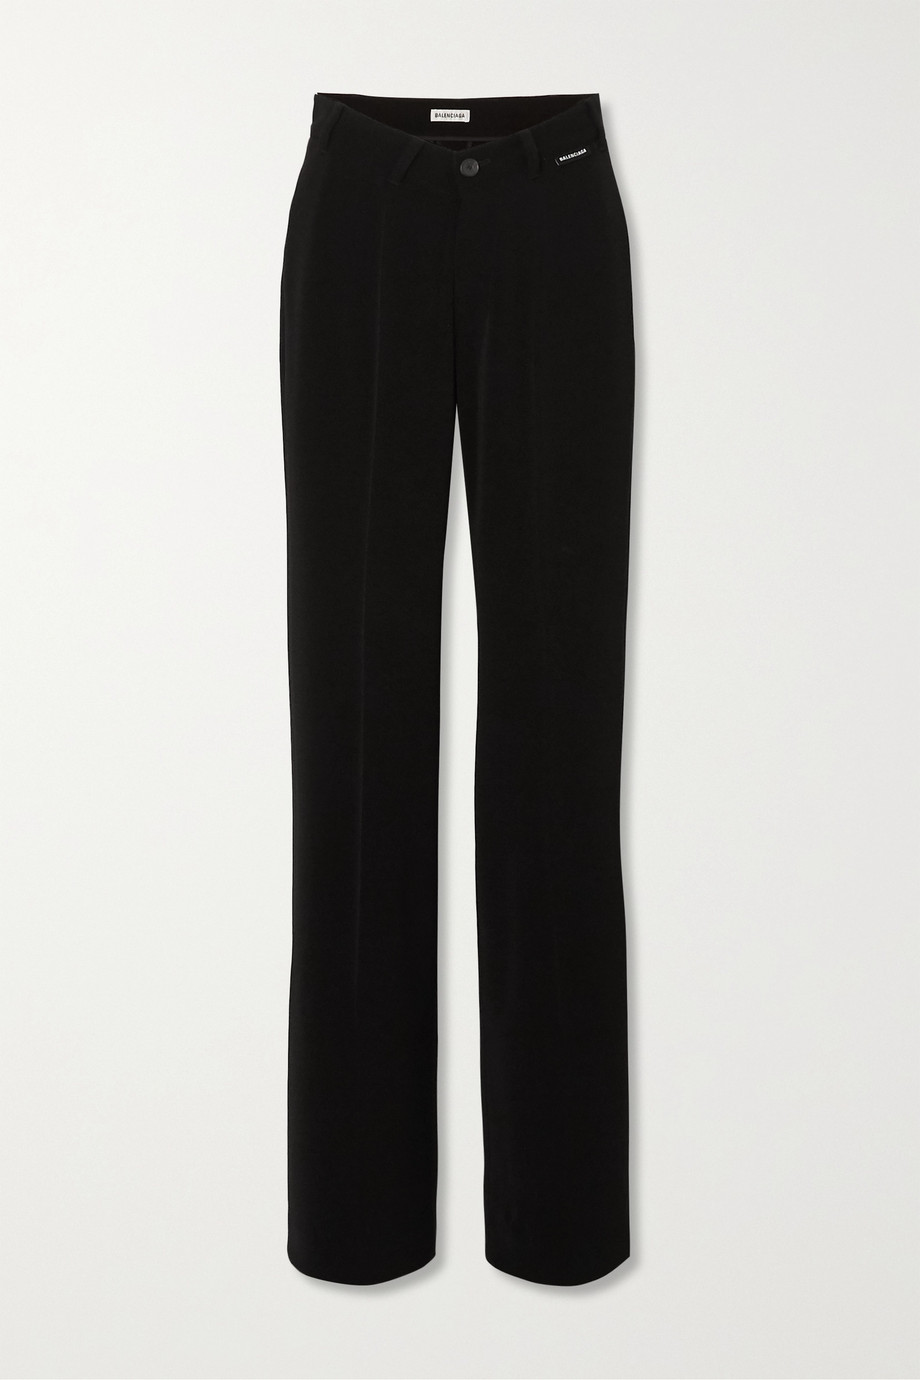 Balenciaga Stretch-crepe straight-leg pants